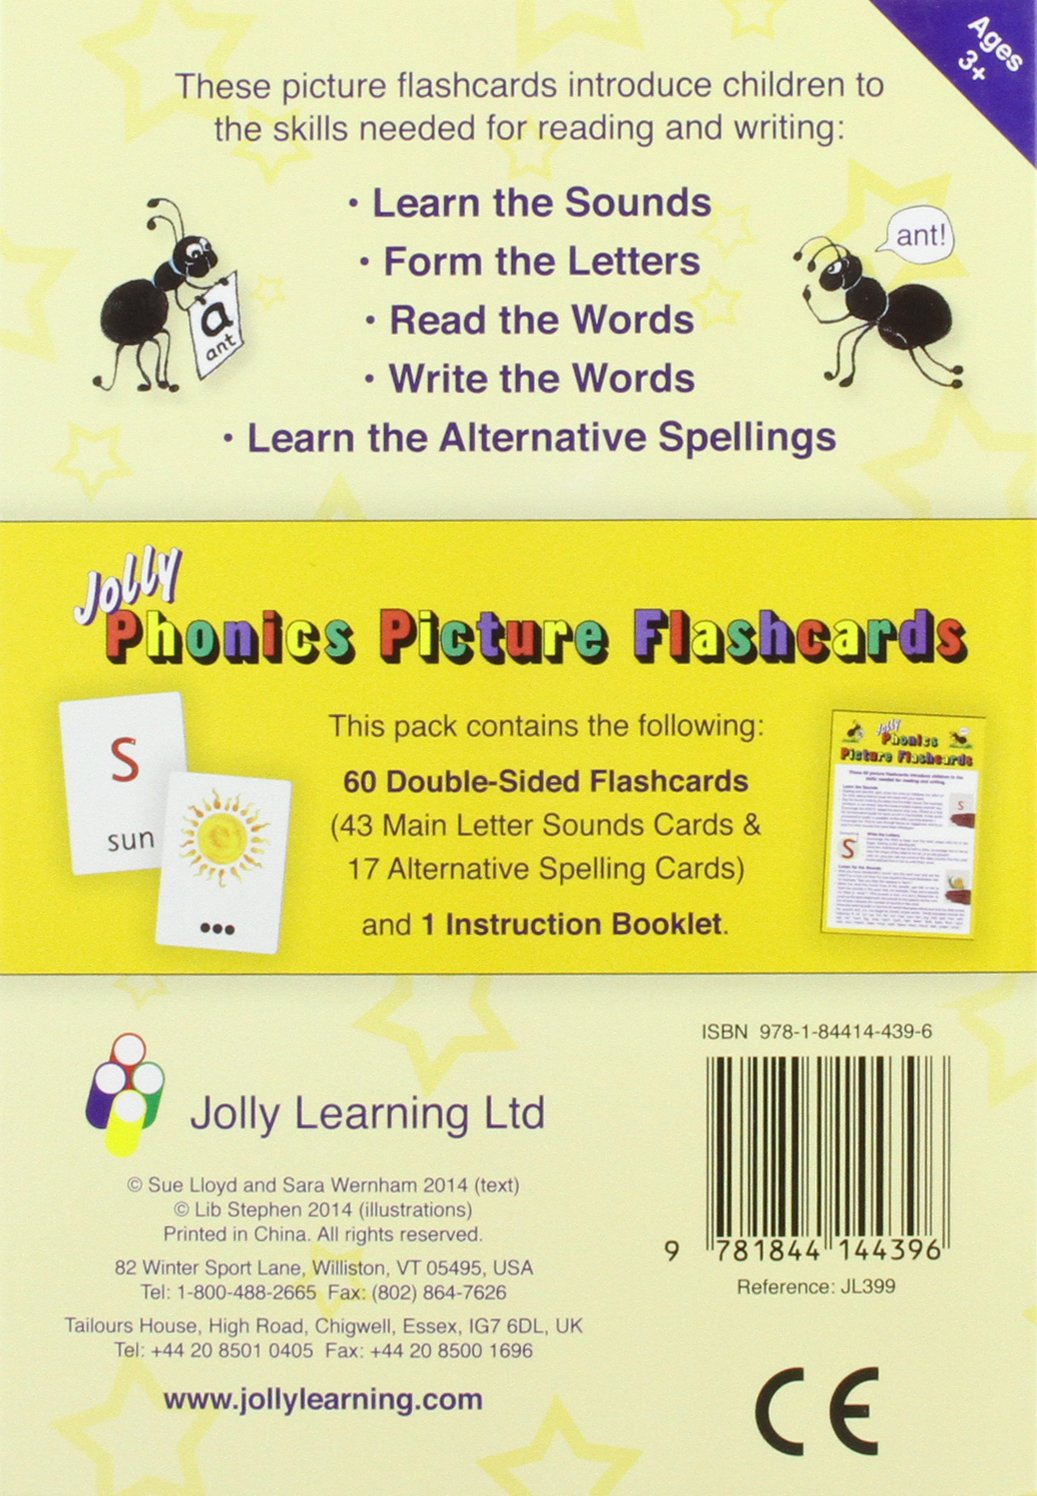 Workbooks jolly phonics workbook 1 free download : Jolly Phonics Picture Flashcards (in Print Letters): Sue Lloyd ...